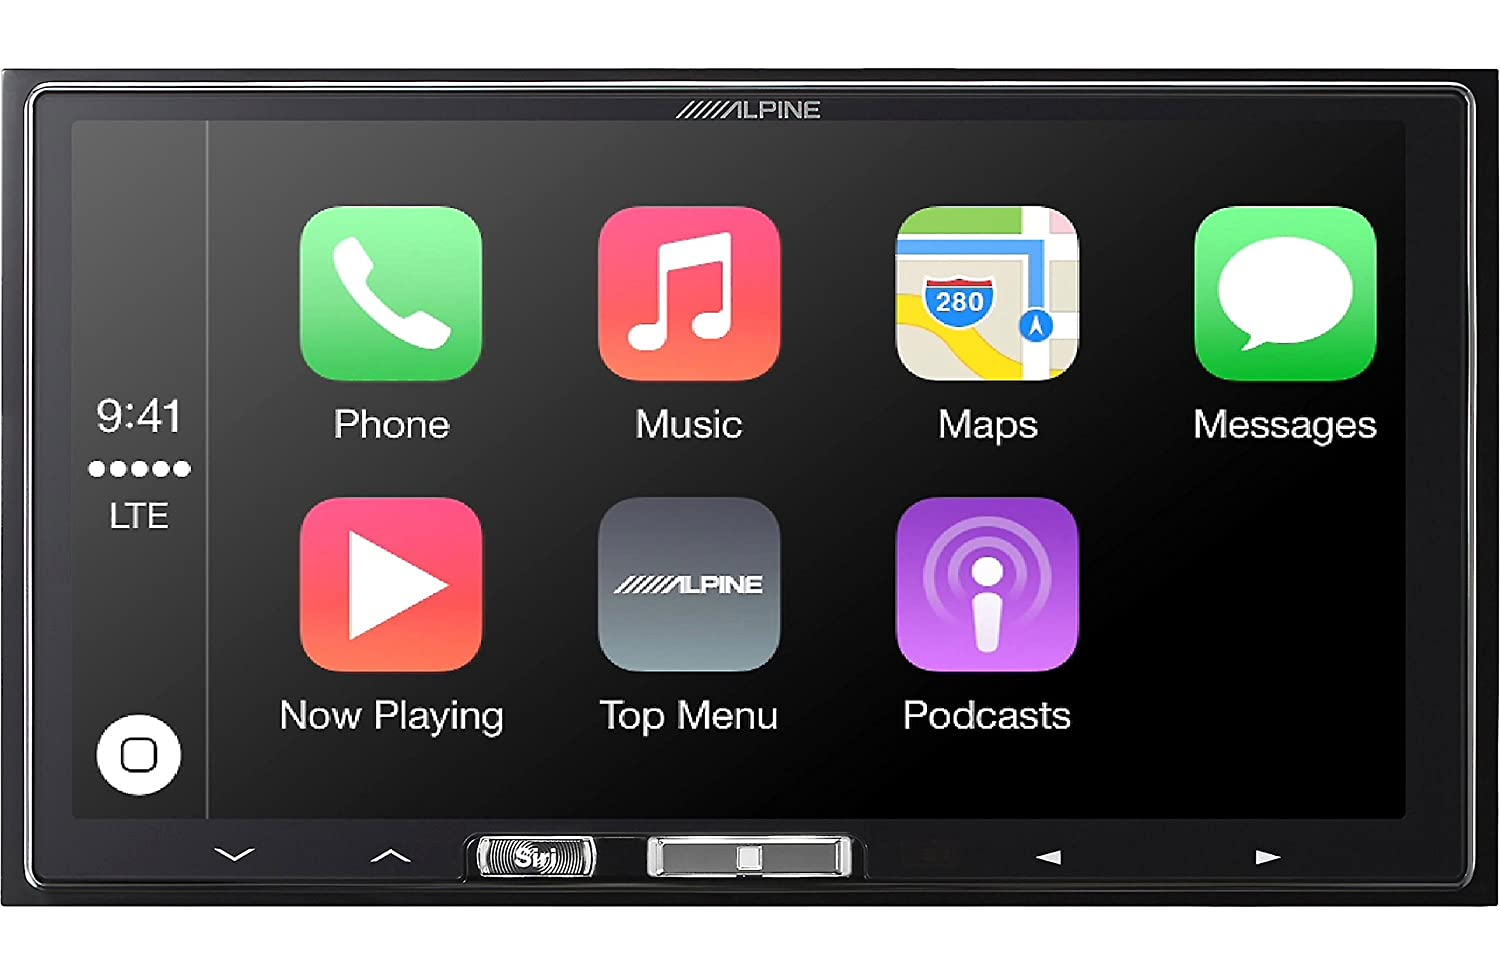 Alpine ILX-107 touchscreen car stereo review